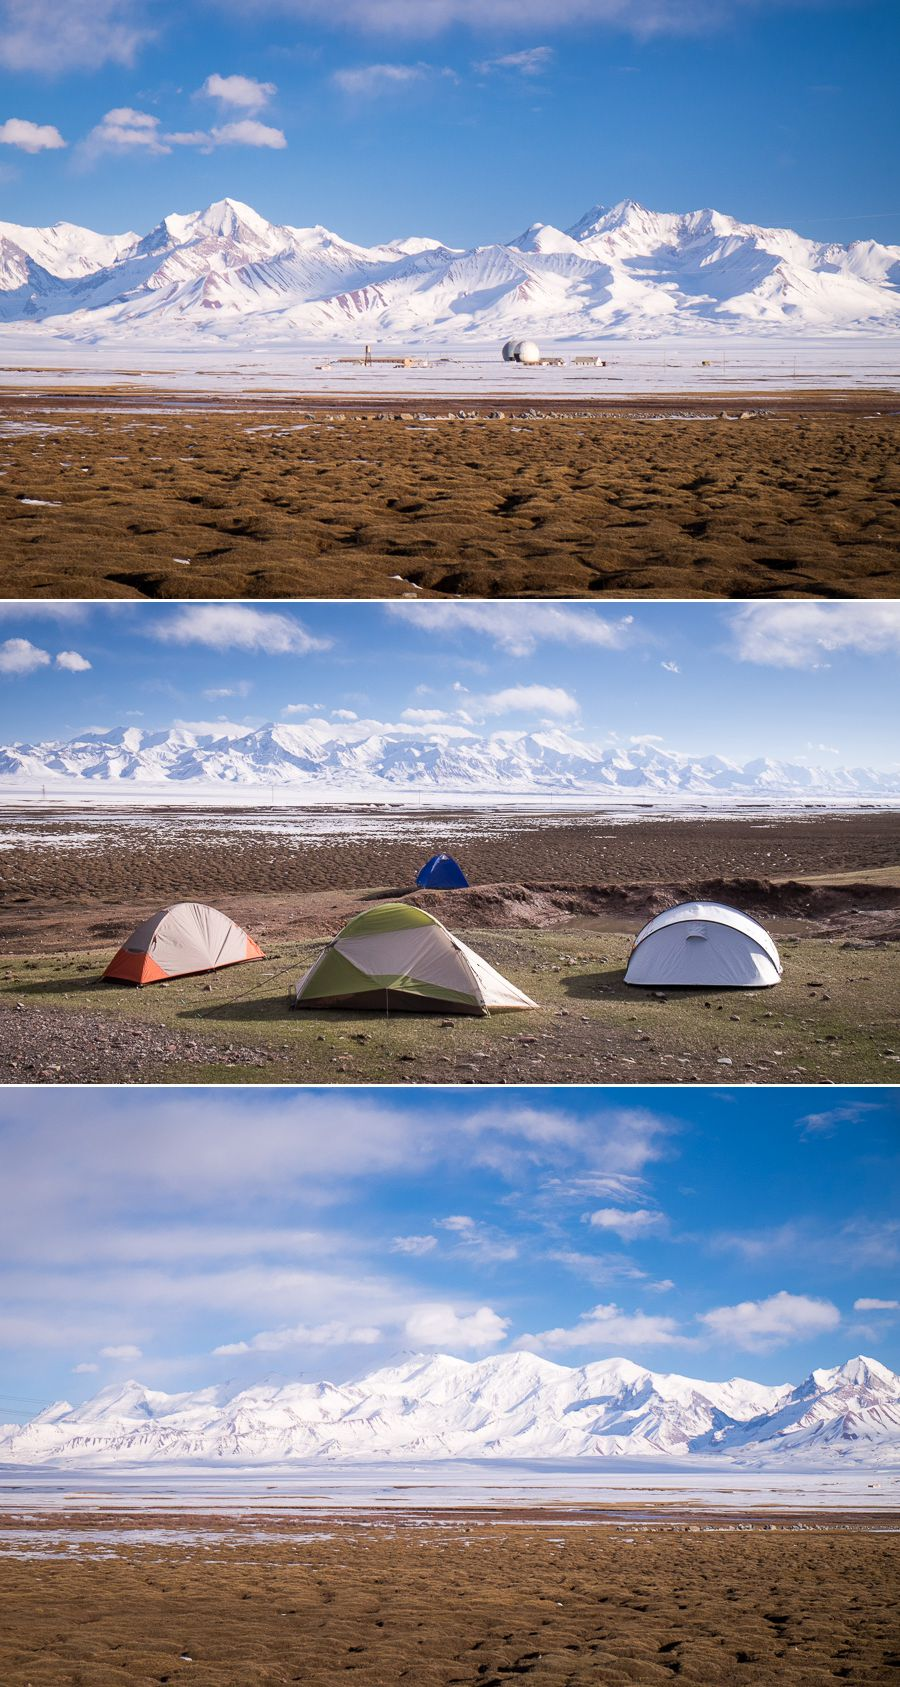 Kyrgyzstan - camping on the Pamir Highway